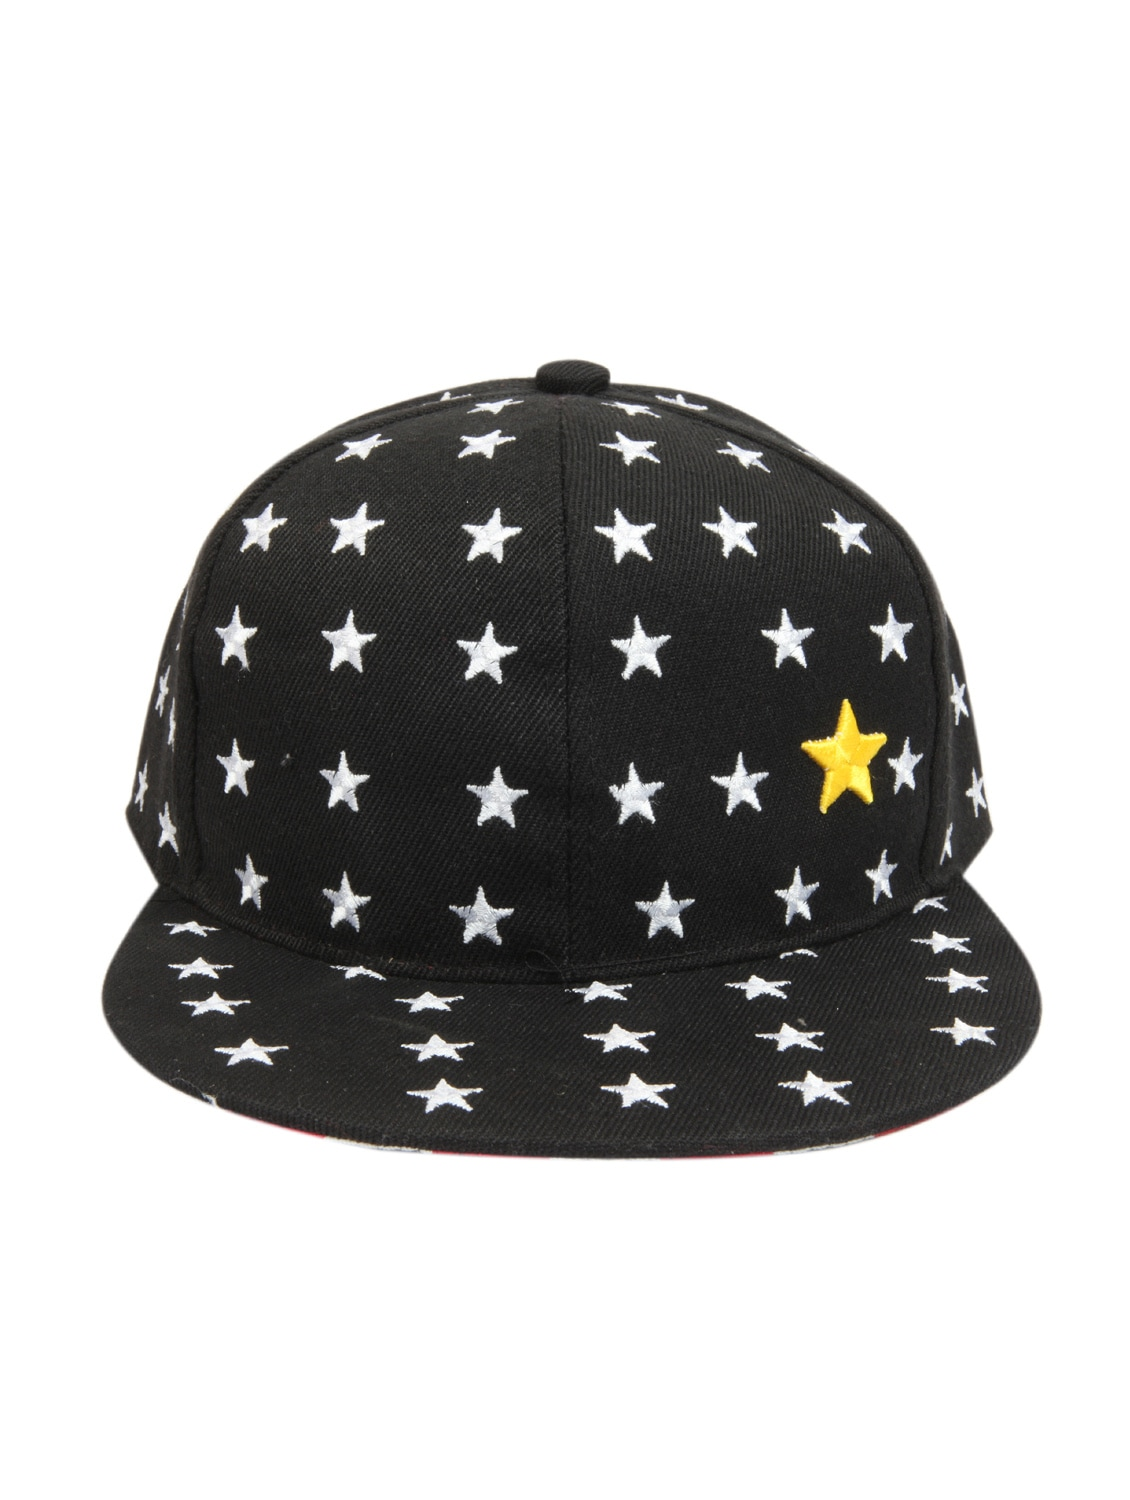 a71a226008a Buy Ilu Snapback Cap Baseball Caps Hiphop Caps Hats Men Women Boys for  Women from Limeroad for ₹268 at 79% off